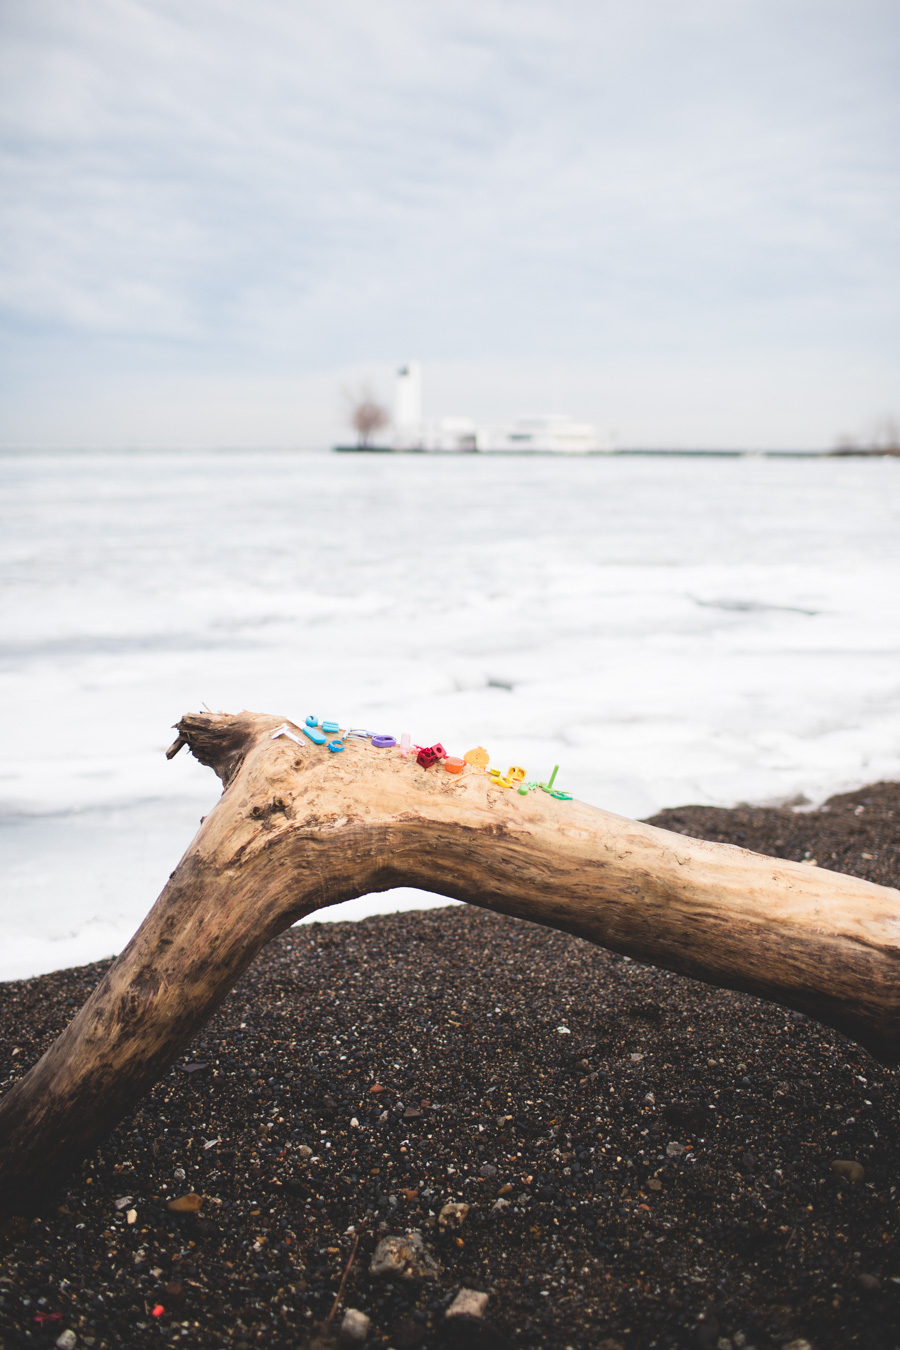 lake erie, wendy park, beach plastic, cleveland